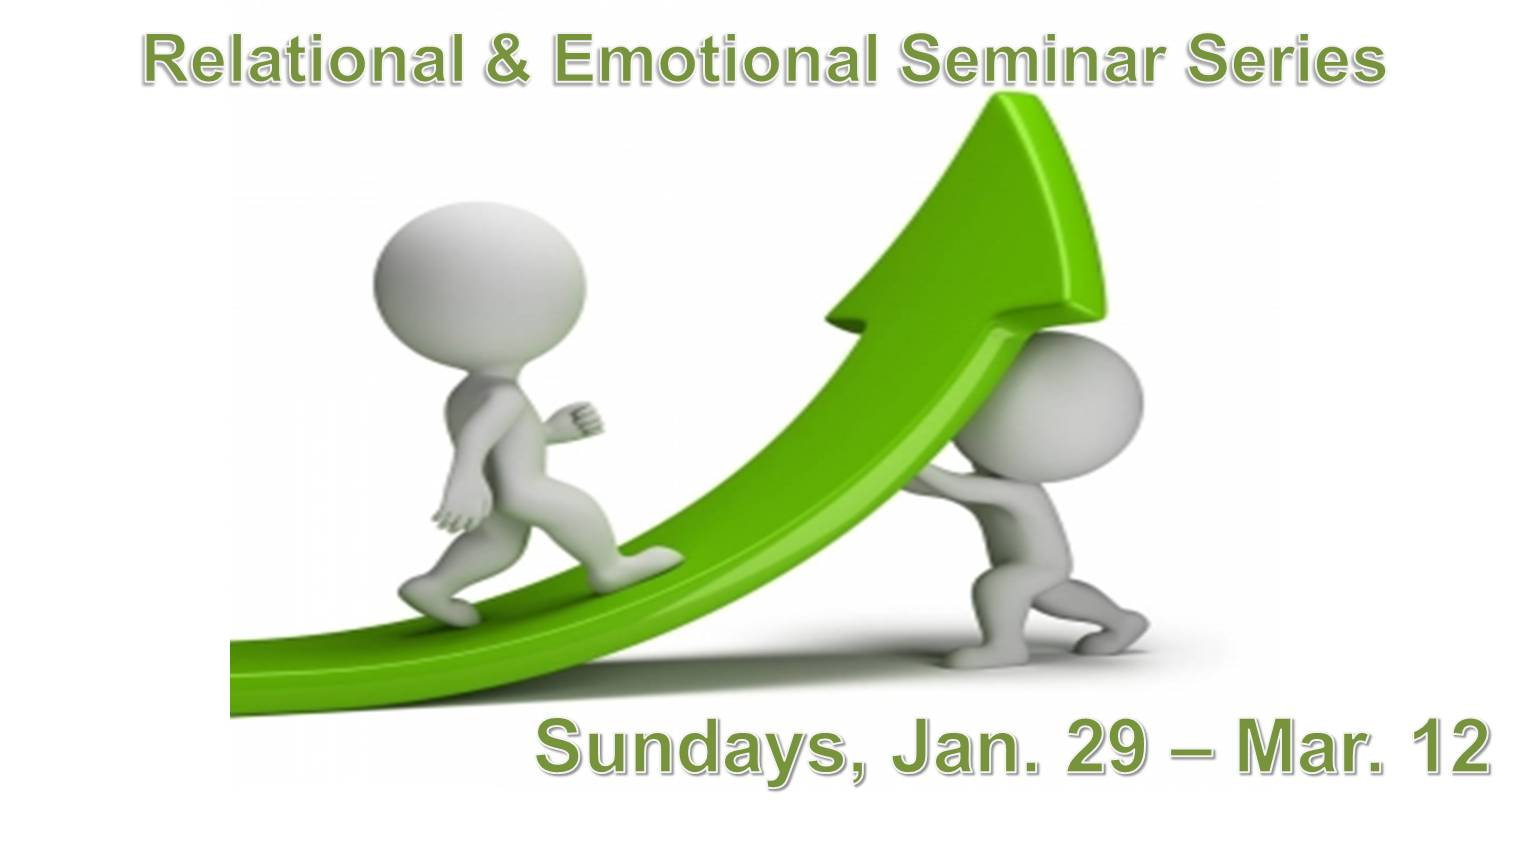 Relationa-Emotional-Seminar-Series